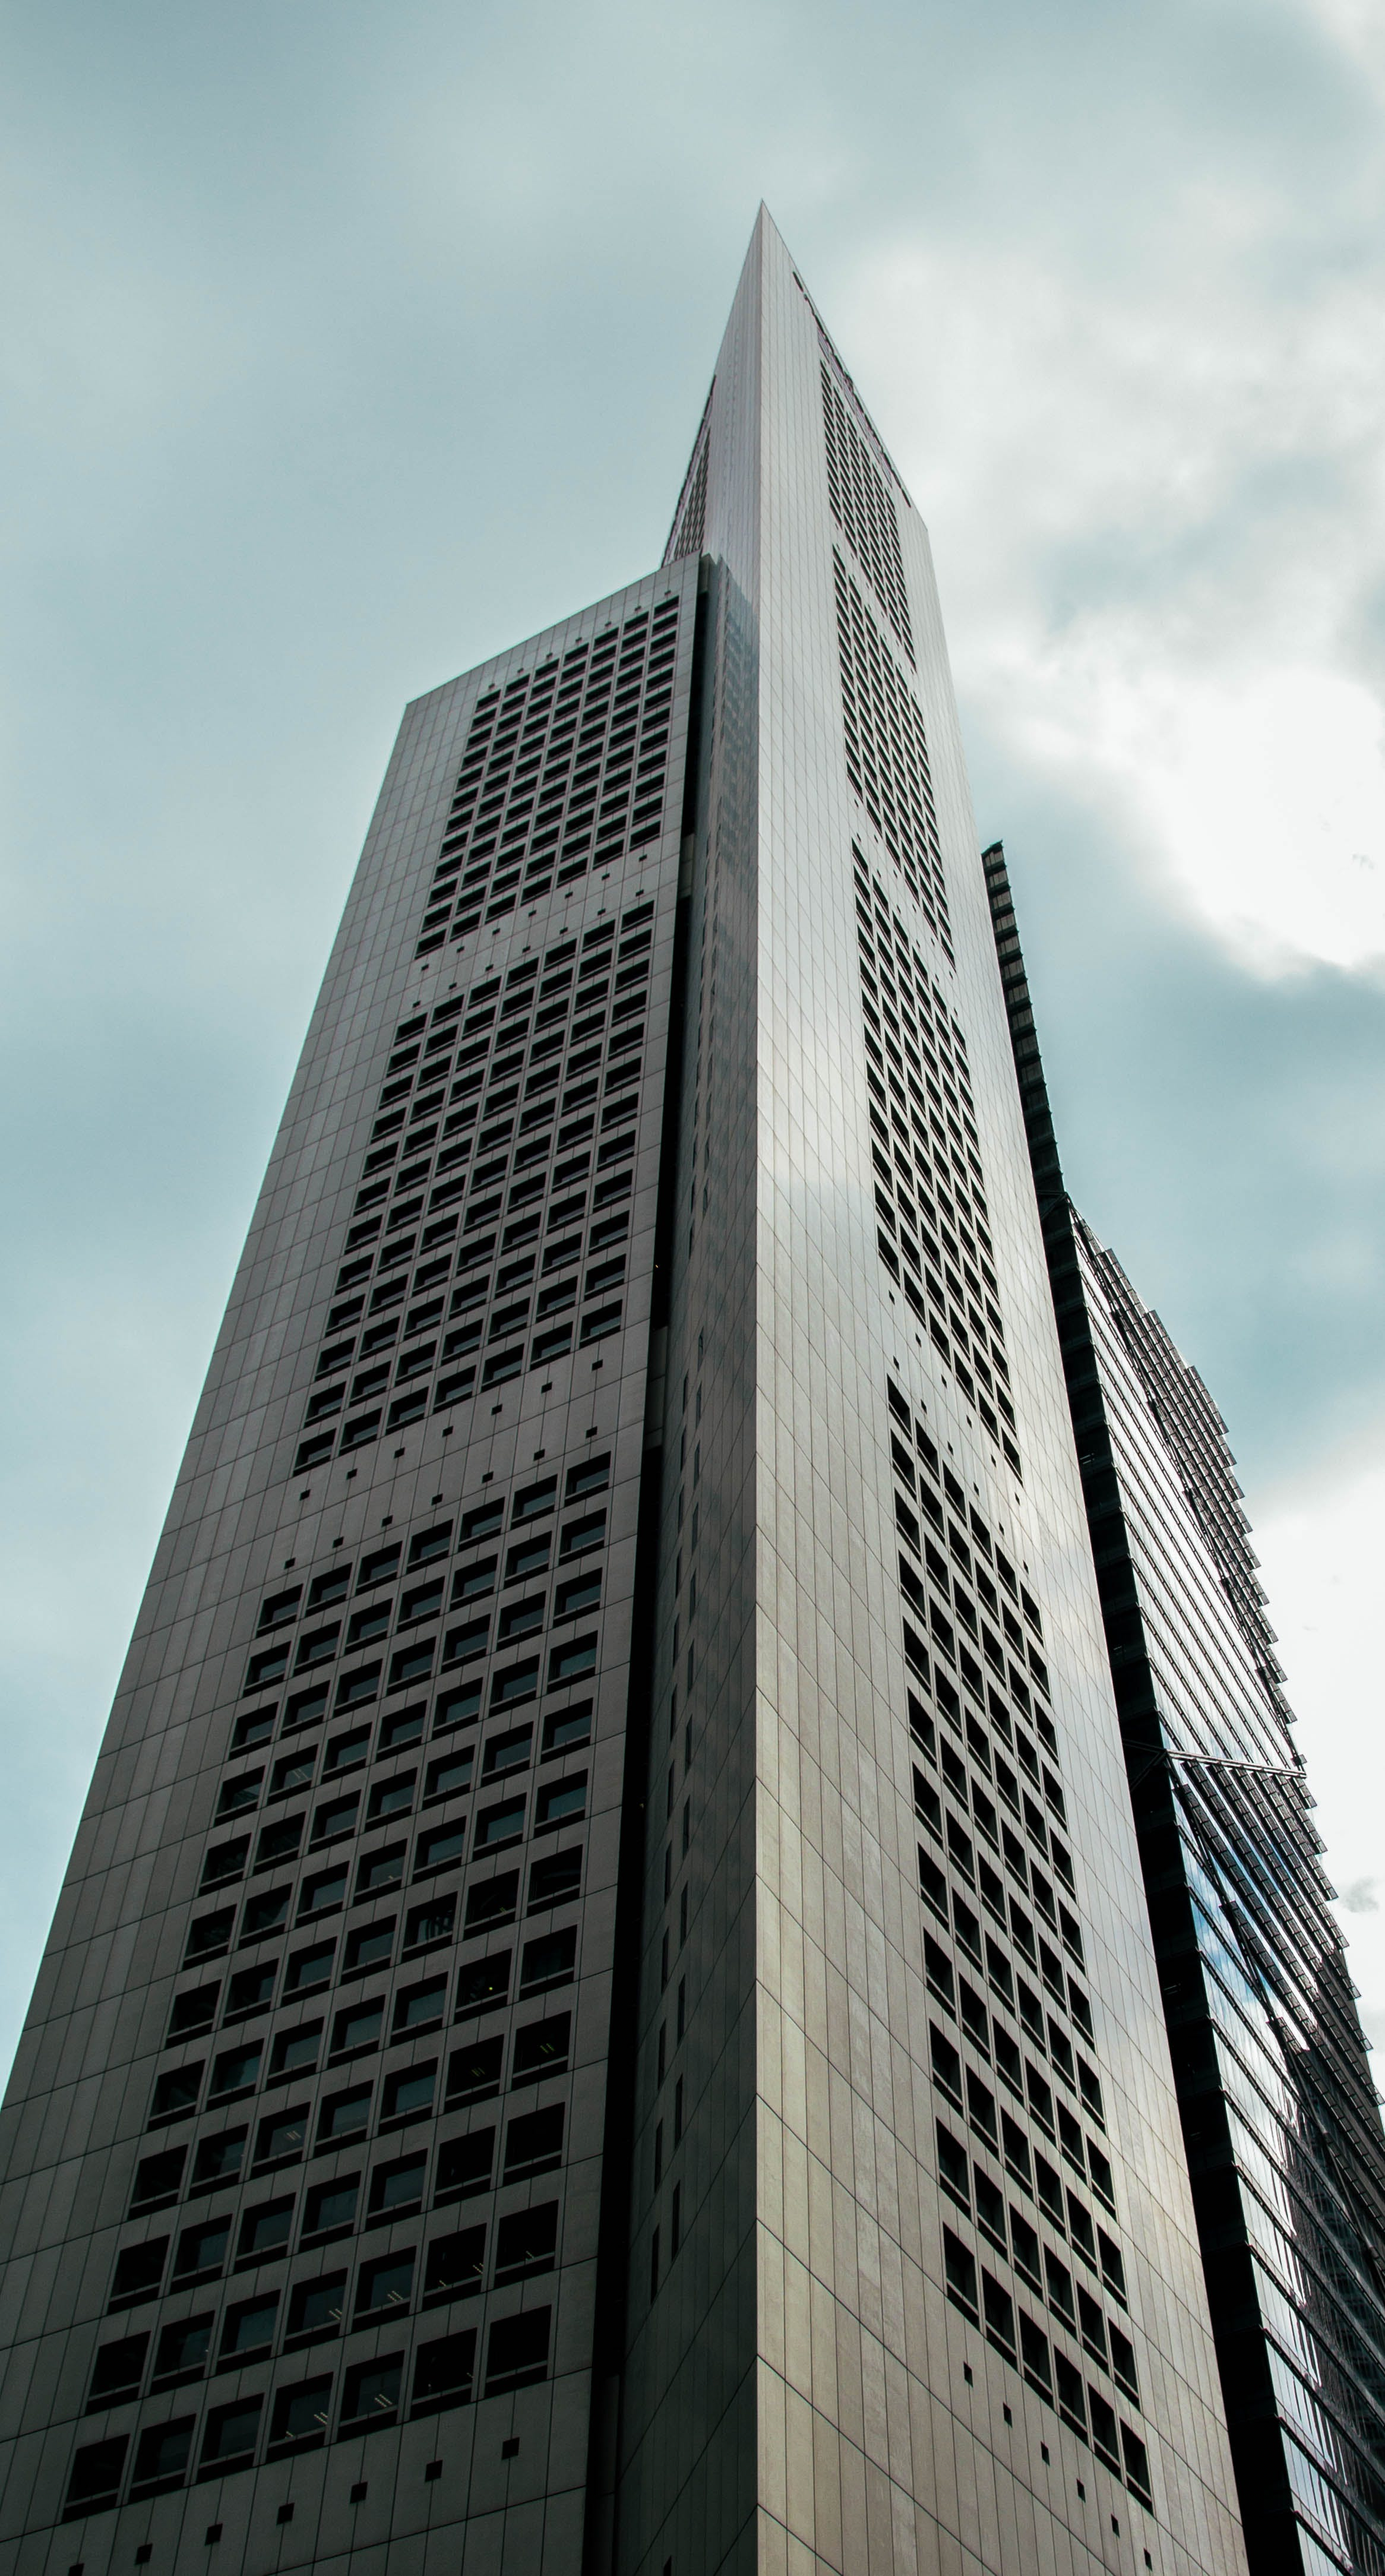 Gray Concrete Building Under White and Blue Cloudy Sky during Daytime